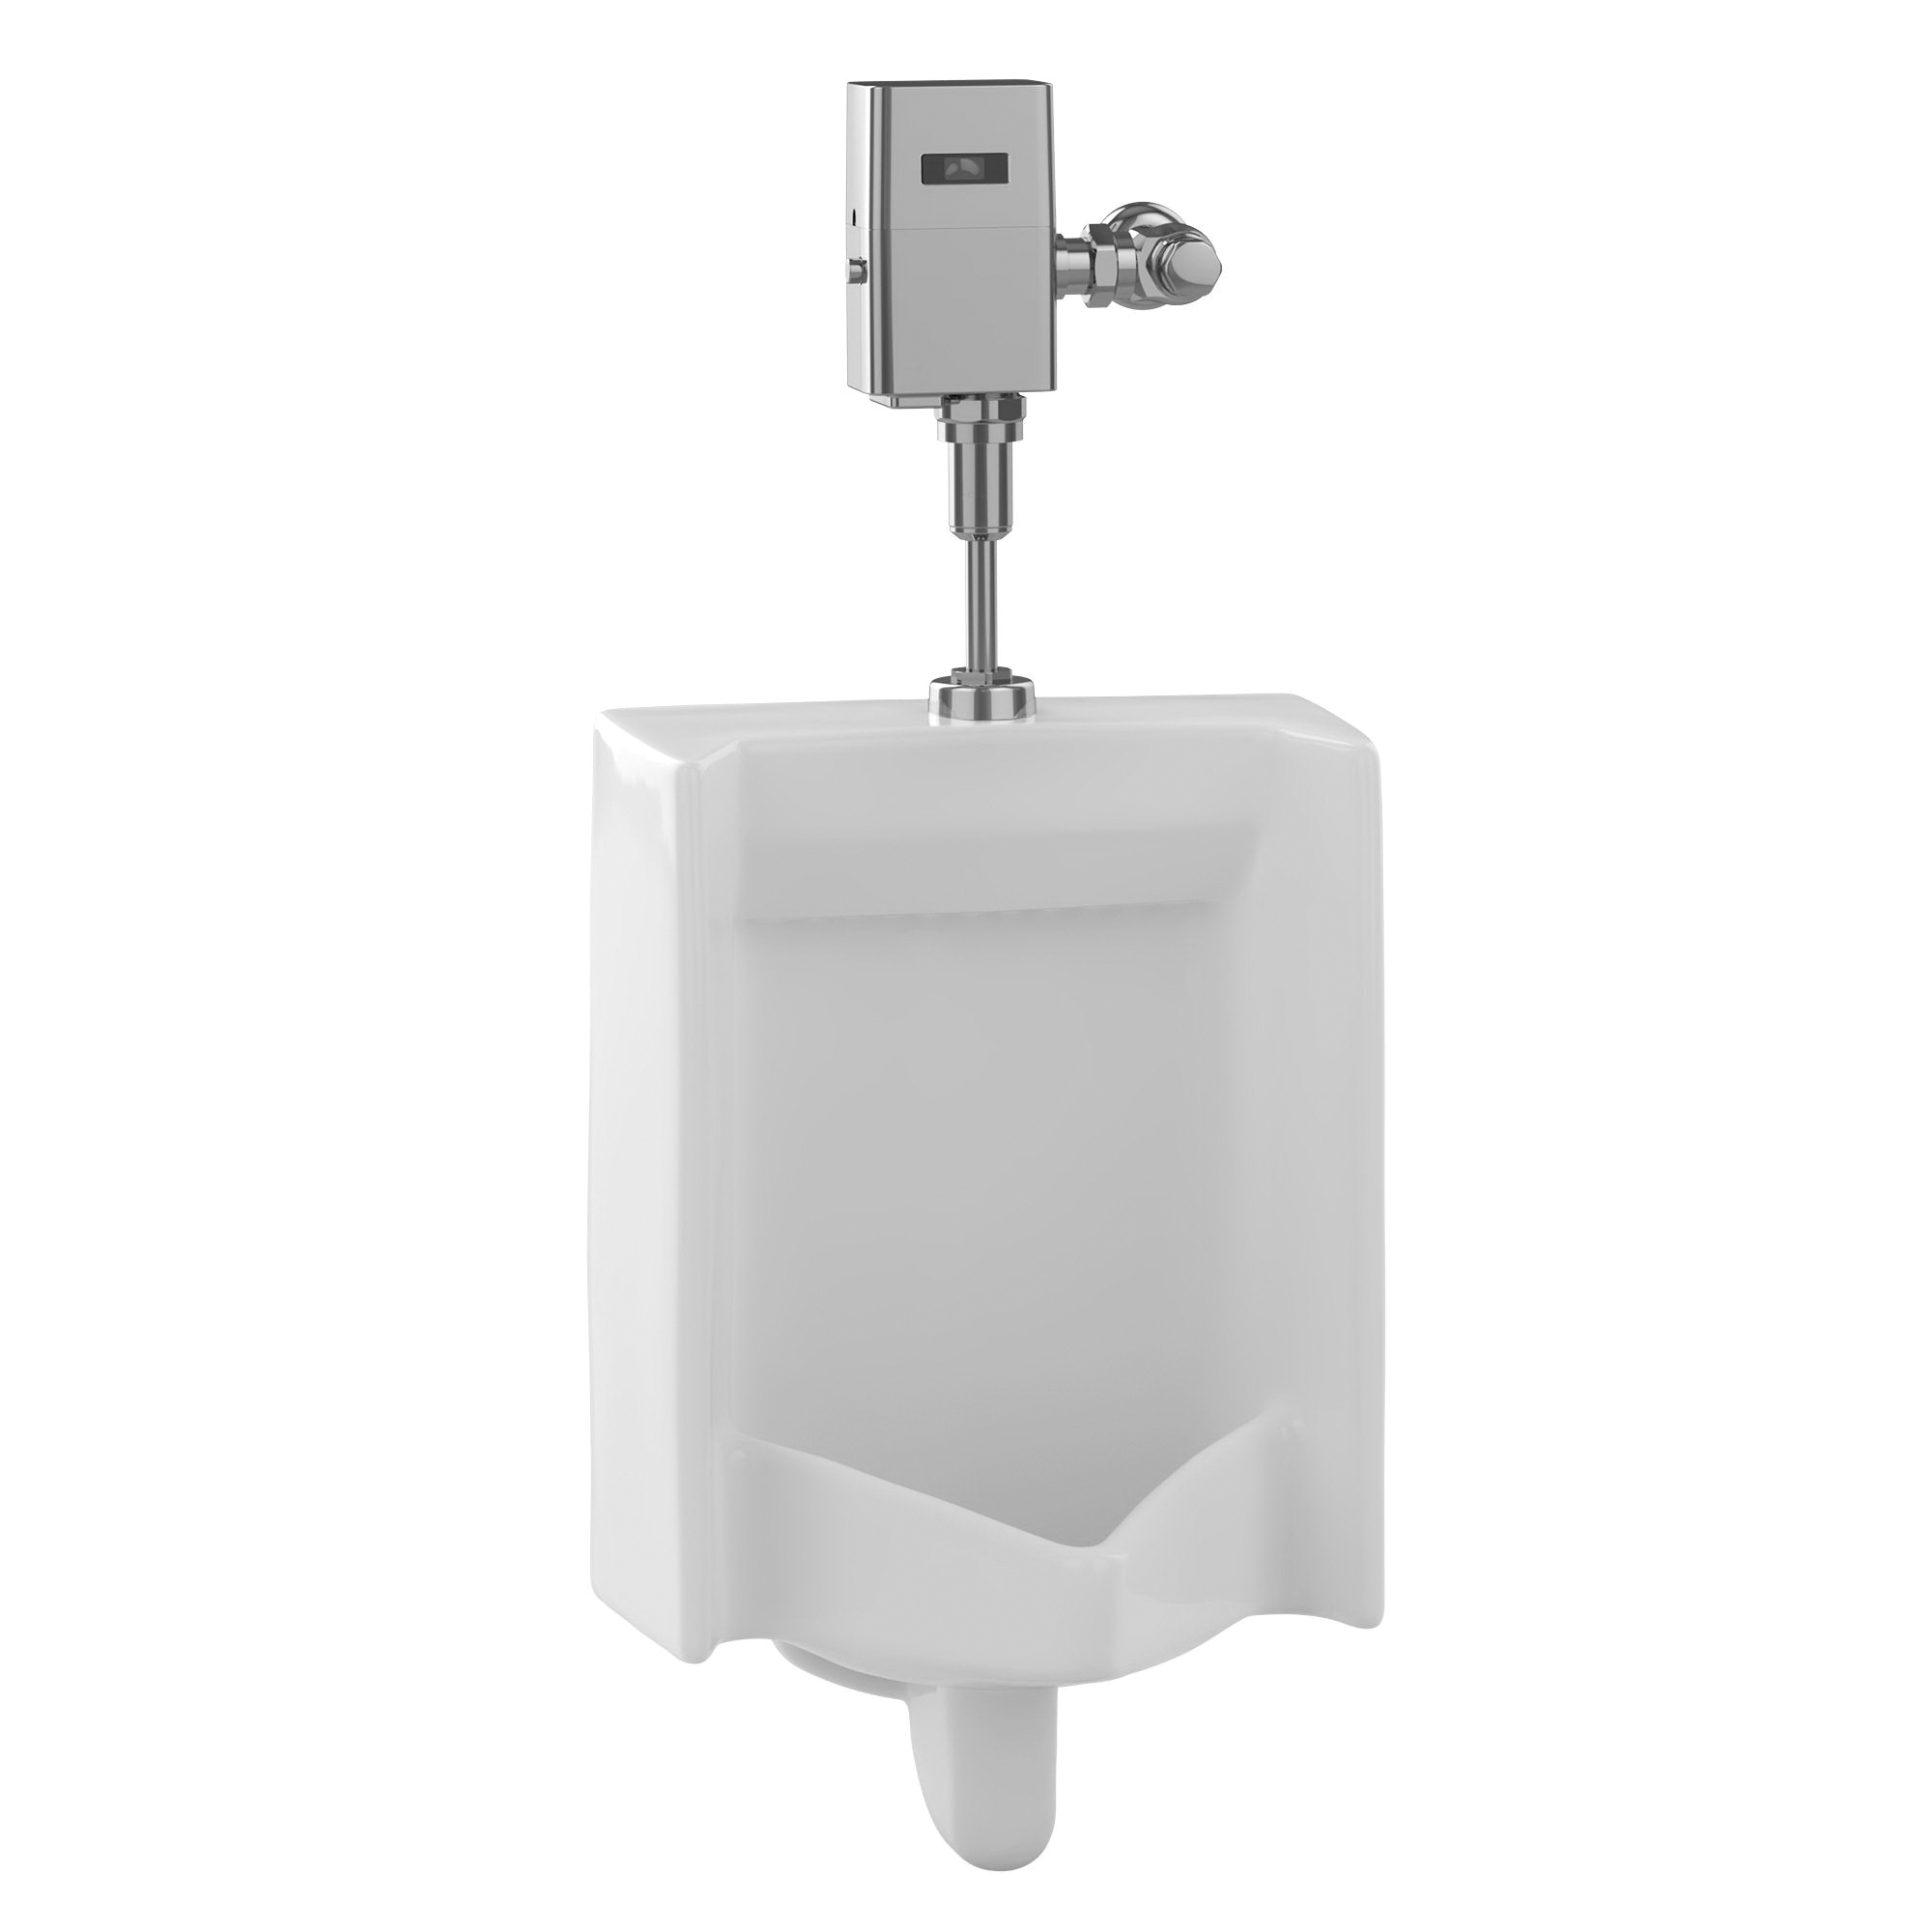 Toto® UT447E#01 High Efficiency Washout Urinal, 0.5 gpf Flush Rate, Top Spud, Wall Mount, Cotton